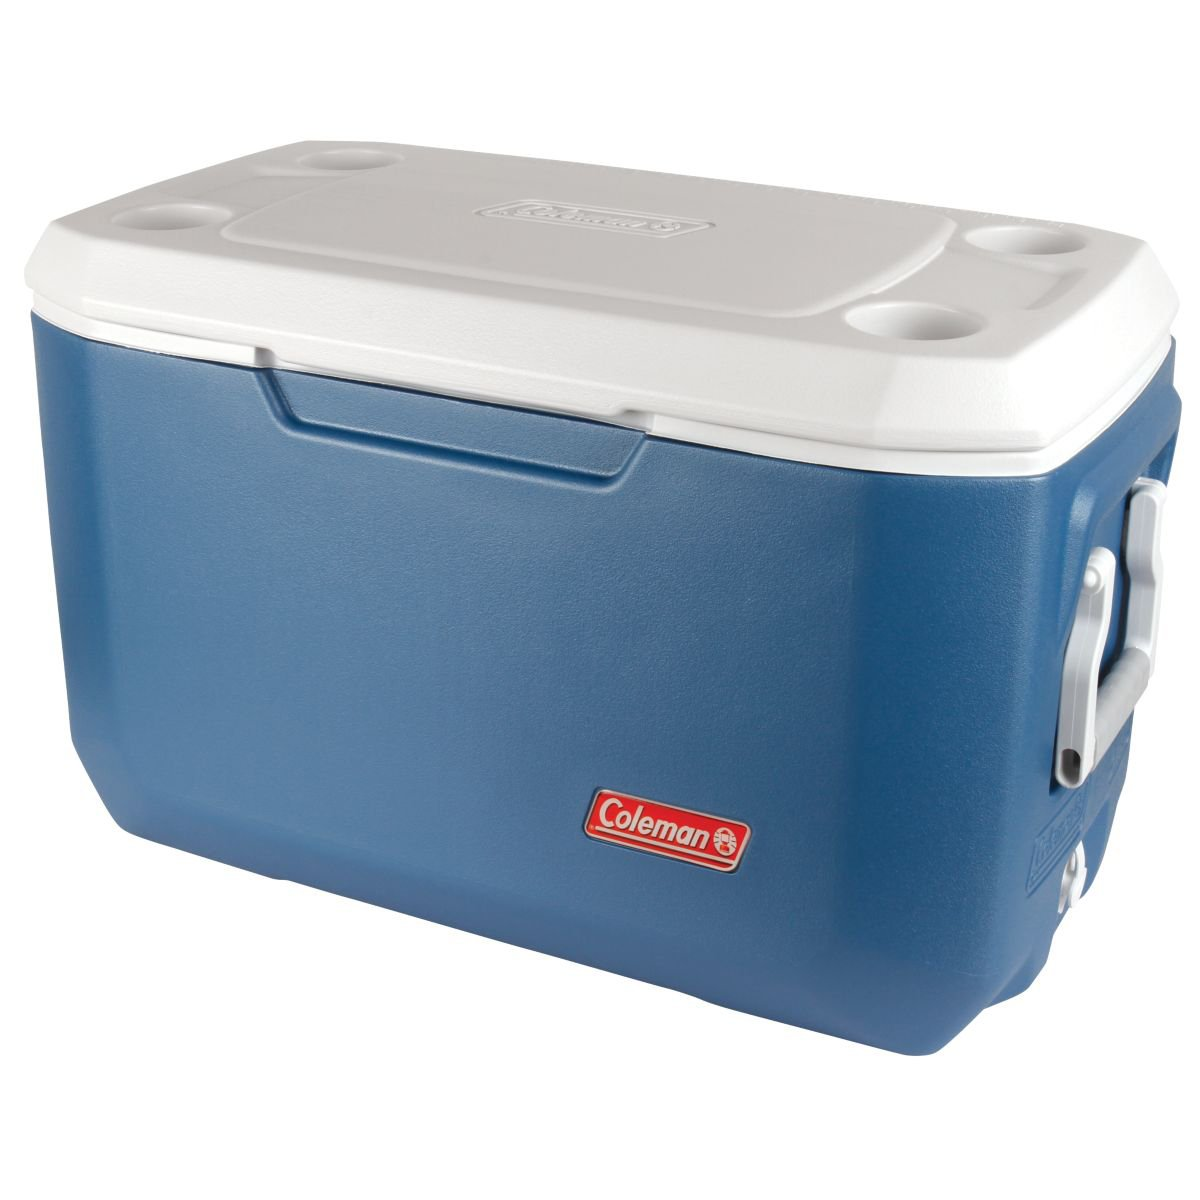 Coleman 70 Quart Xtreme 5 Cooler Review